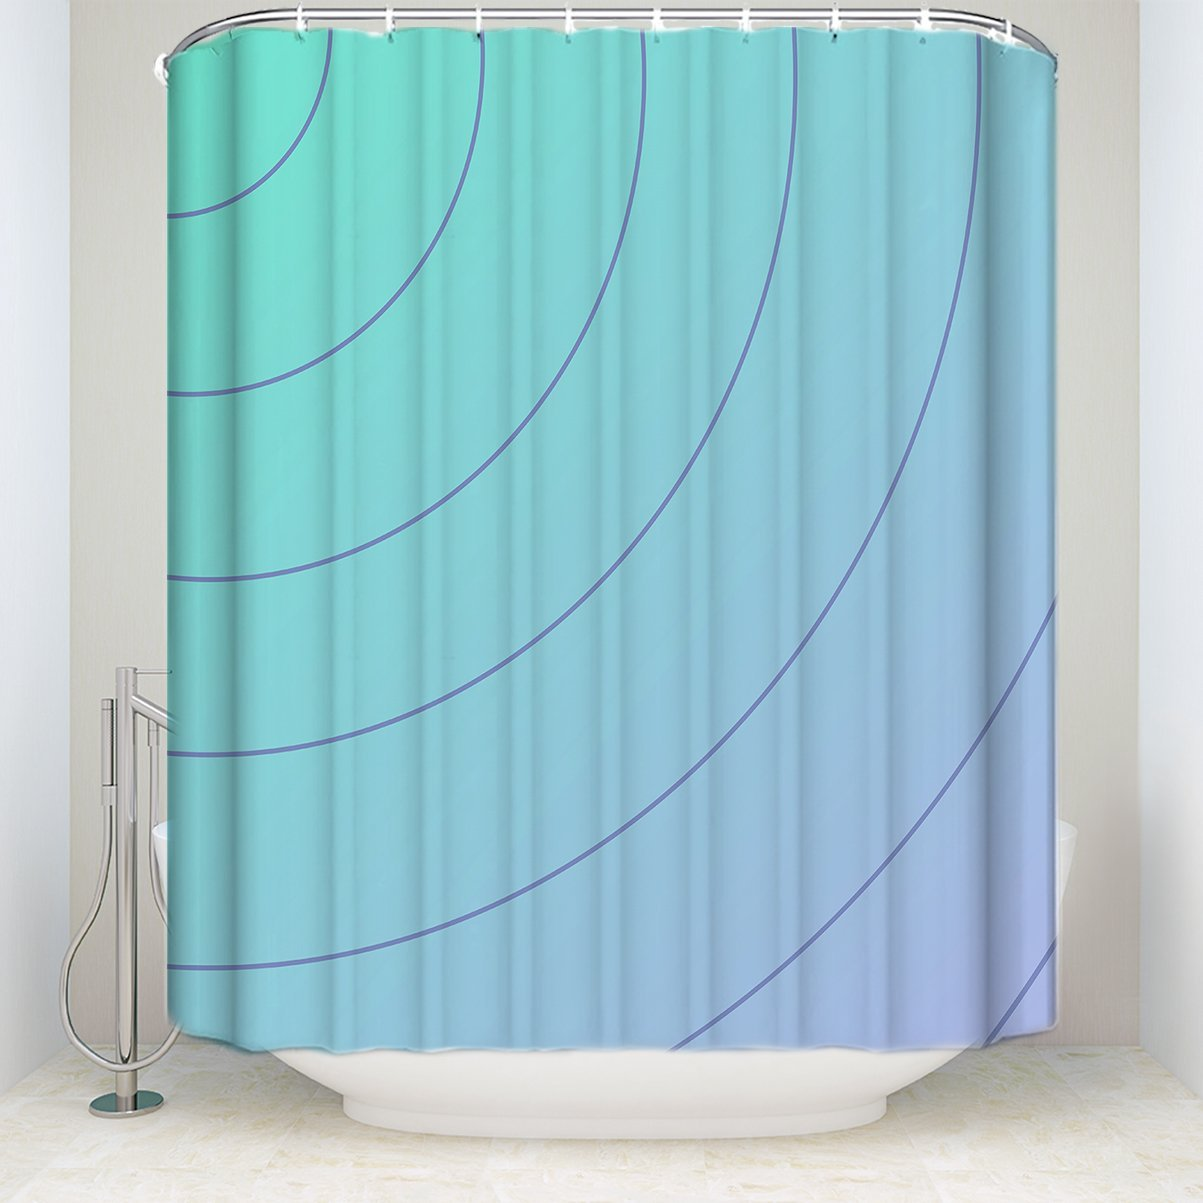 Shower Curtain Oblique Curve Geometric Pattern Waterproof Bathroom Shower Curtain Polyester Fabric Shower Curtain with Hooks